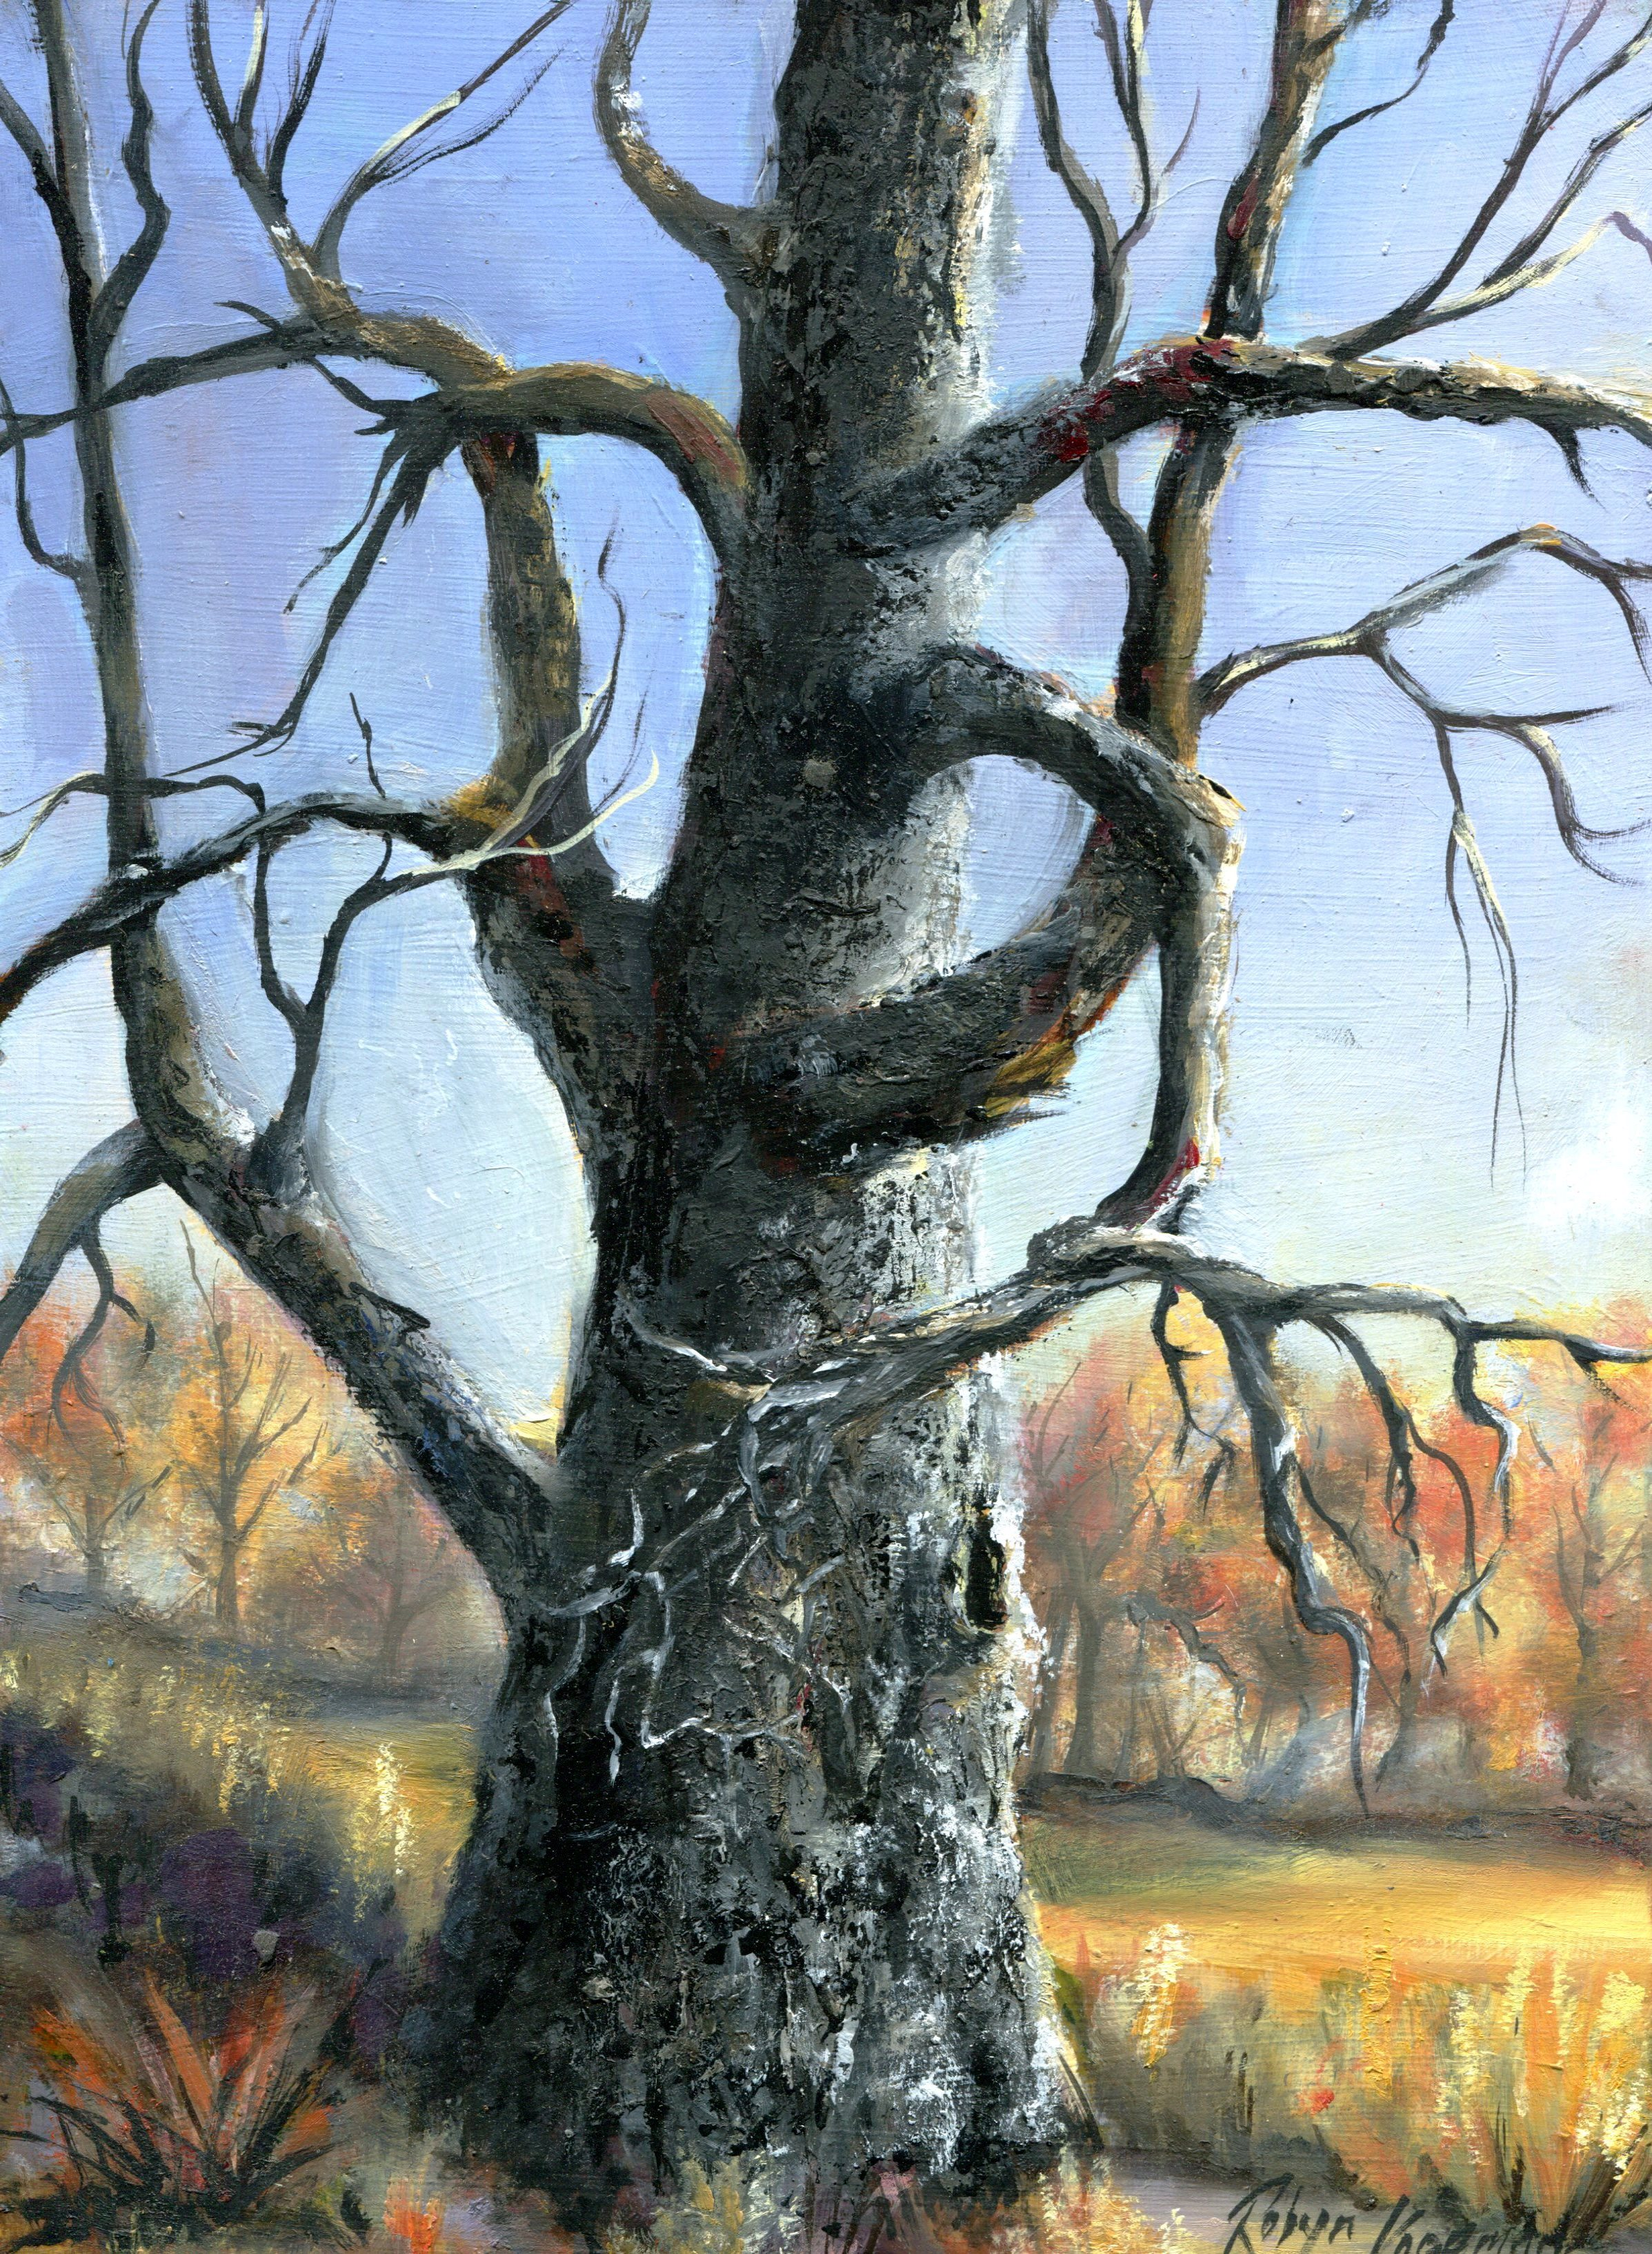 62A ROBYN KOOPMAN, DEAD TREE IN AUTUMN, OIL ON BOARD